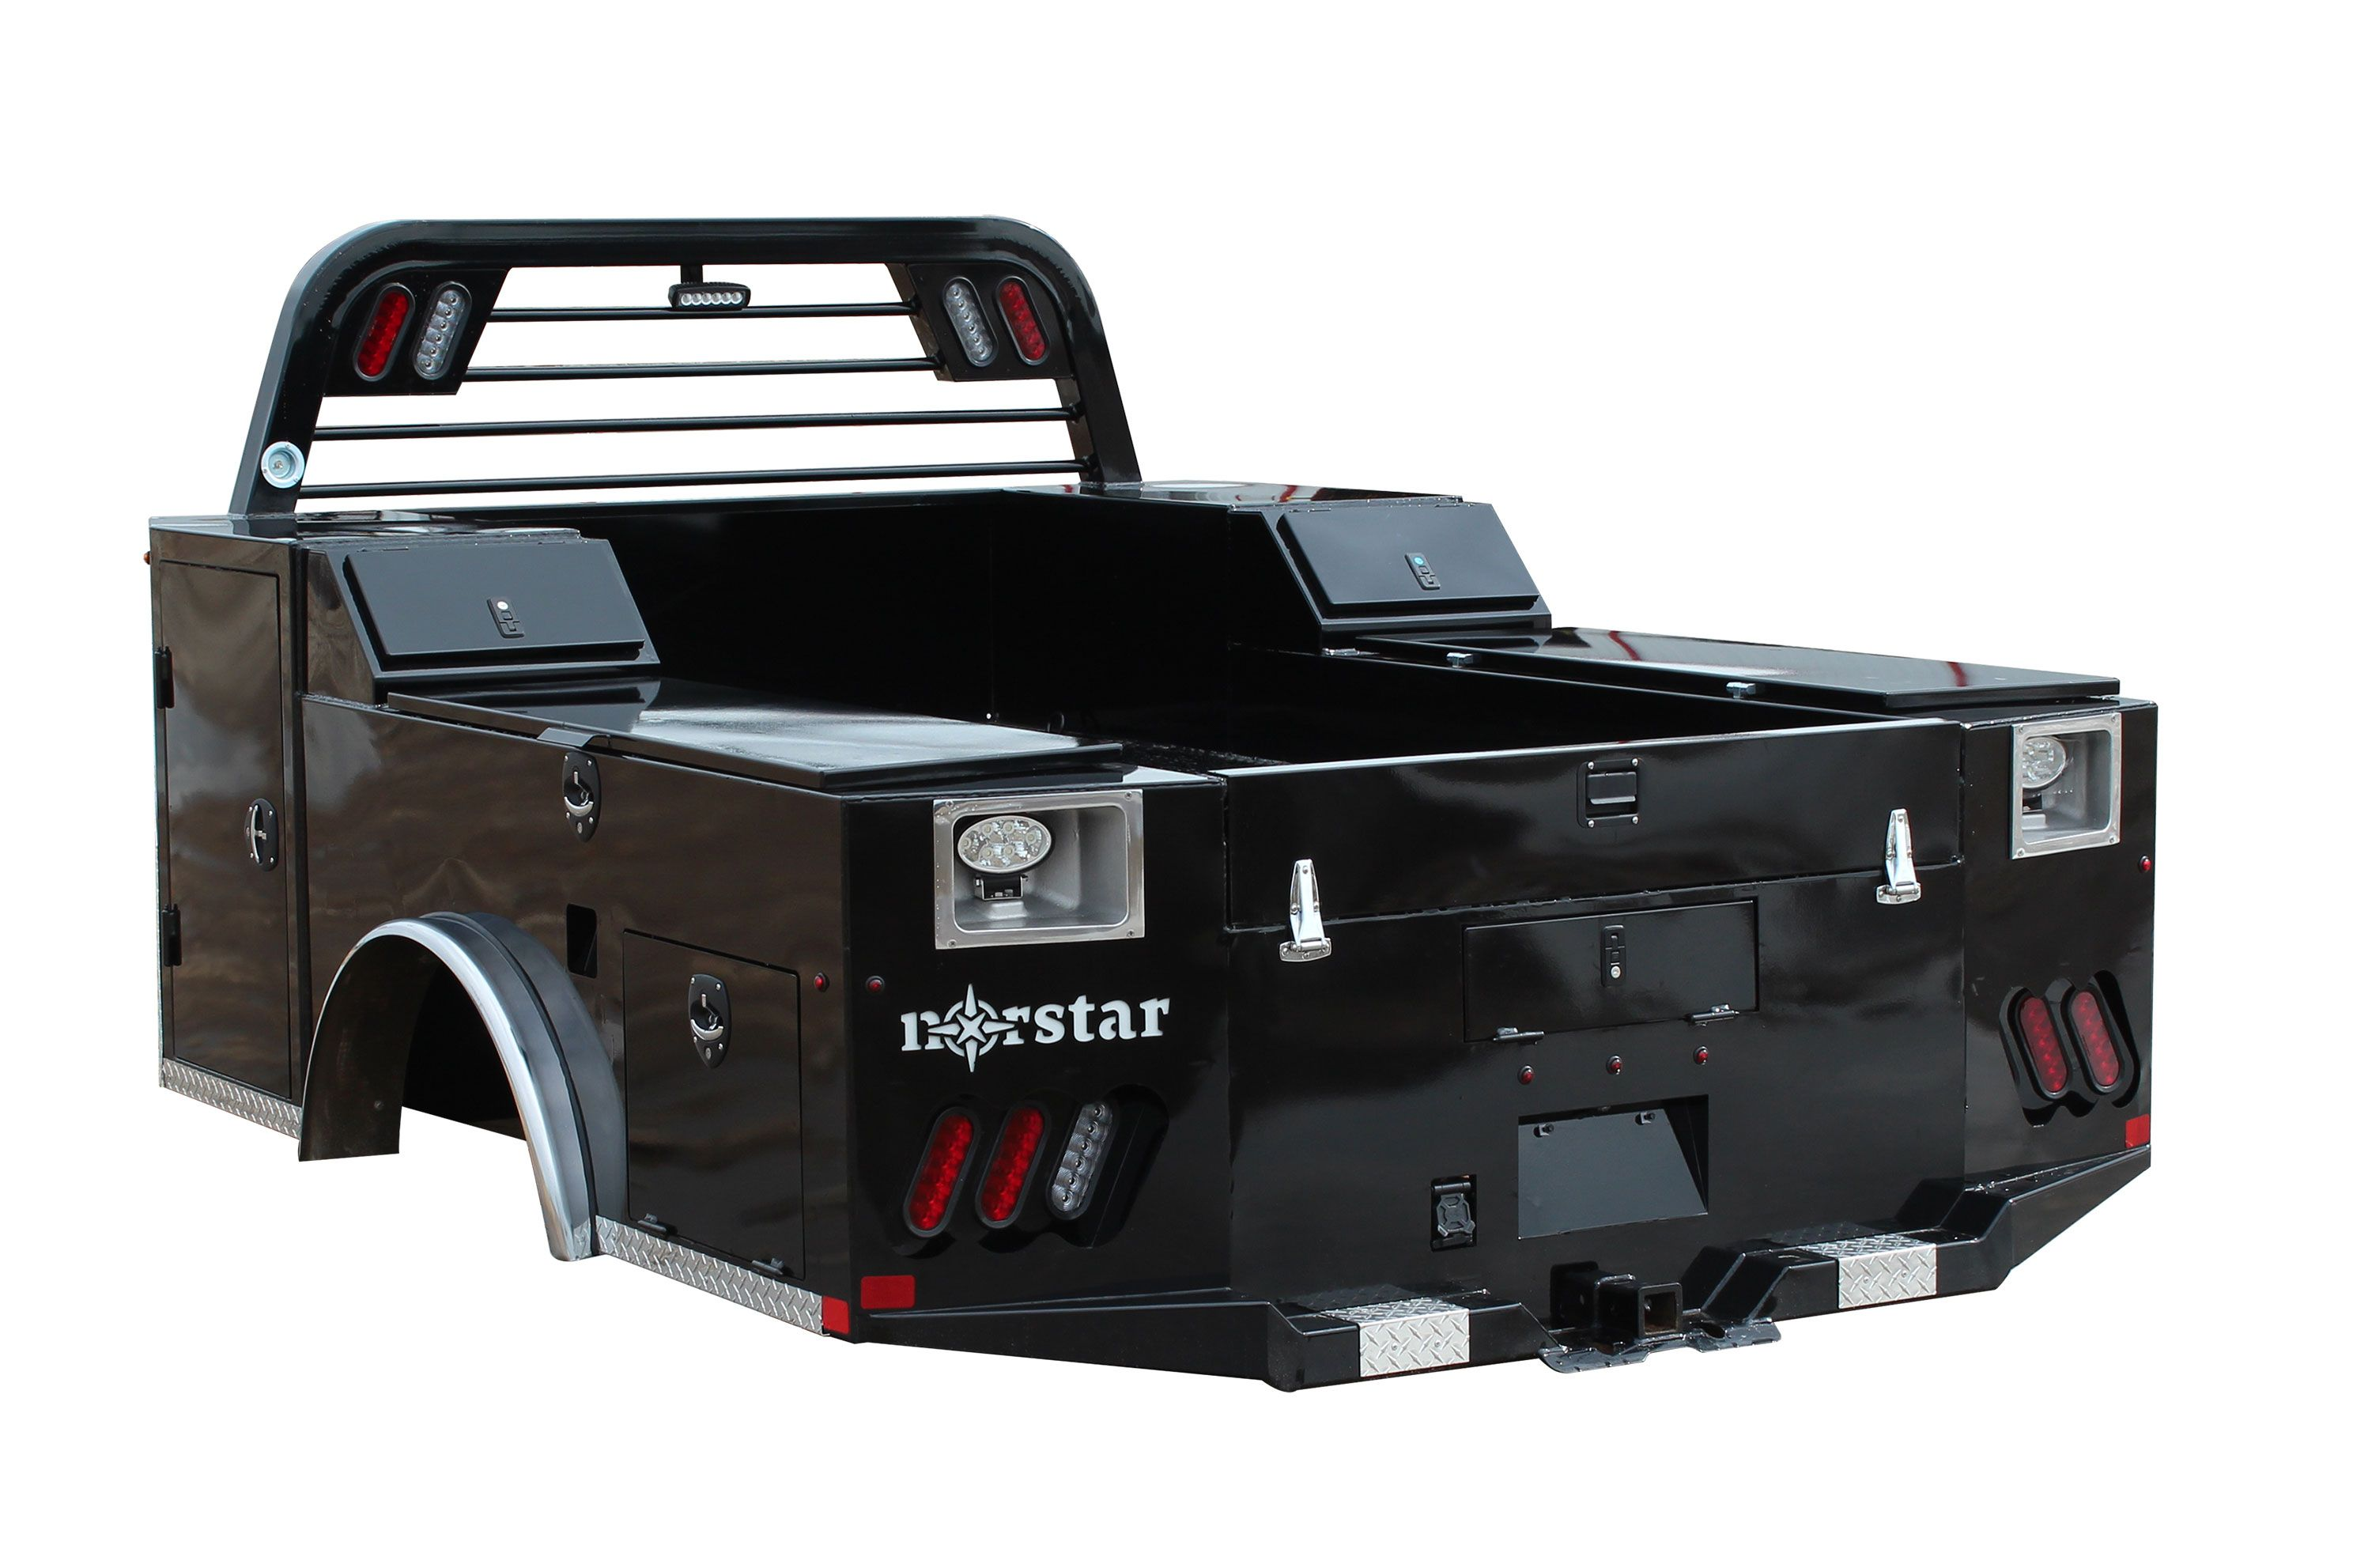 CM Truck Bed - TM Model FITS: 2007 - 2013 Dodge Ram 3500 Cab and ...